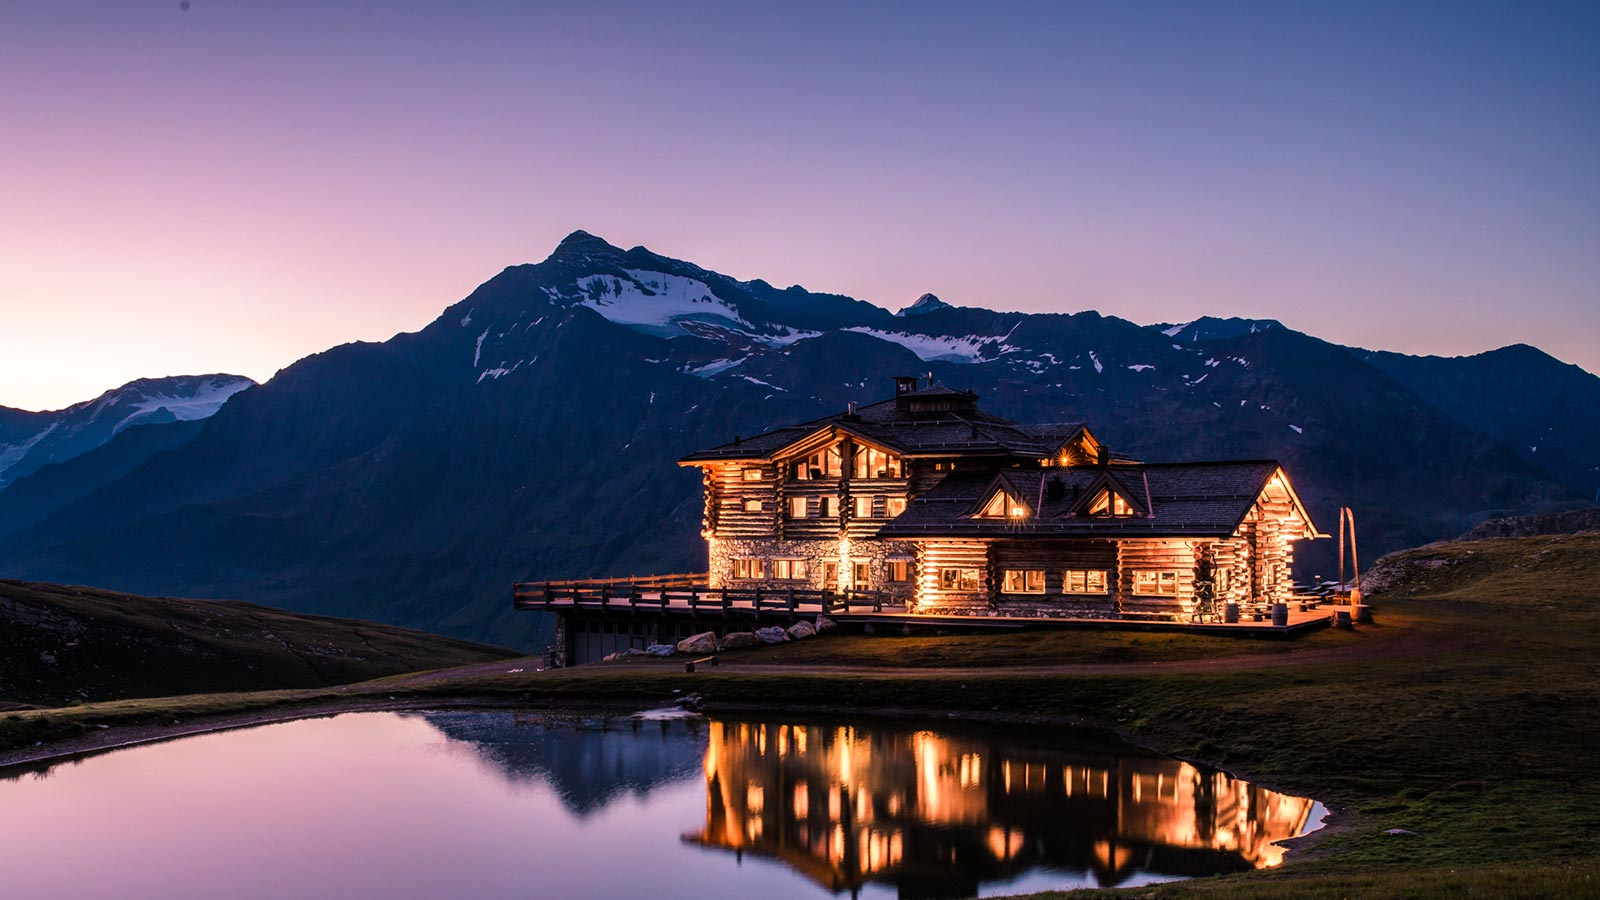 The mountain lodge at night illuminated by lights near the natural park of Stelvio